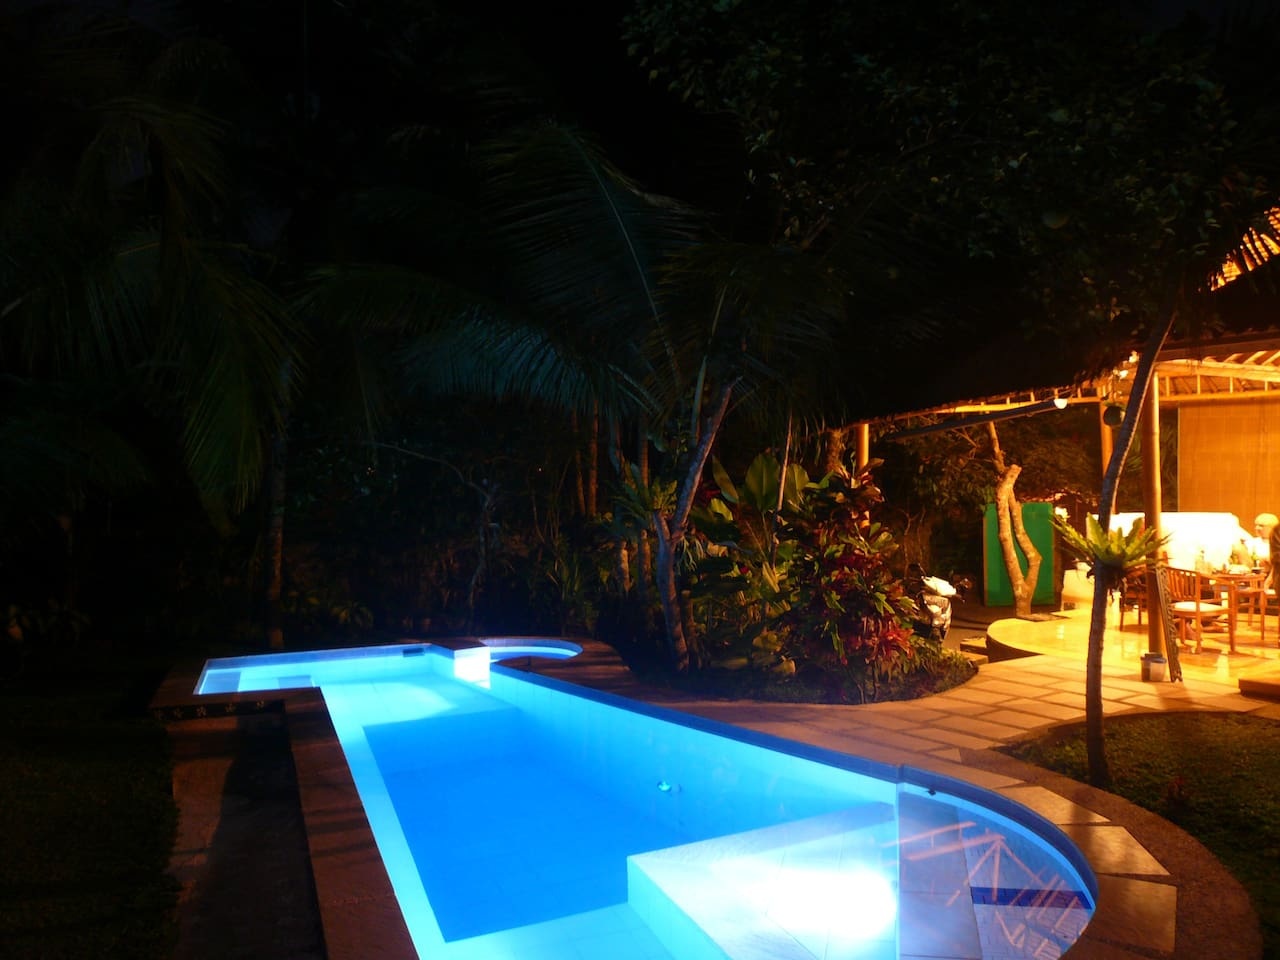 Pool and out door area at night, undercover bike parking for up to 4 bikes